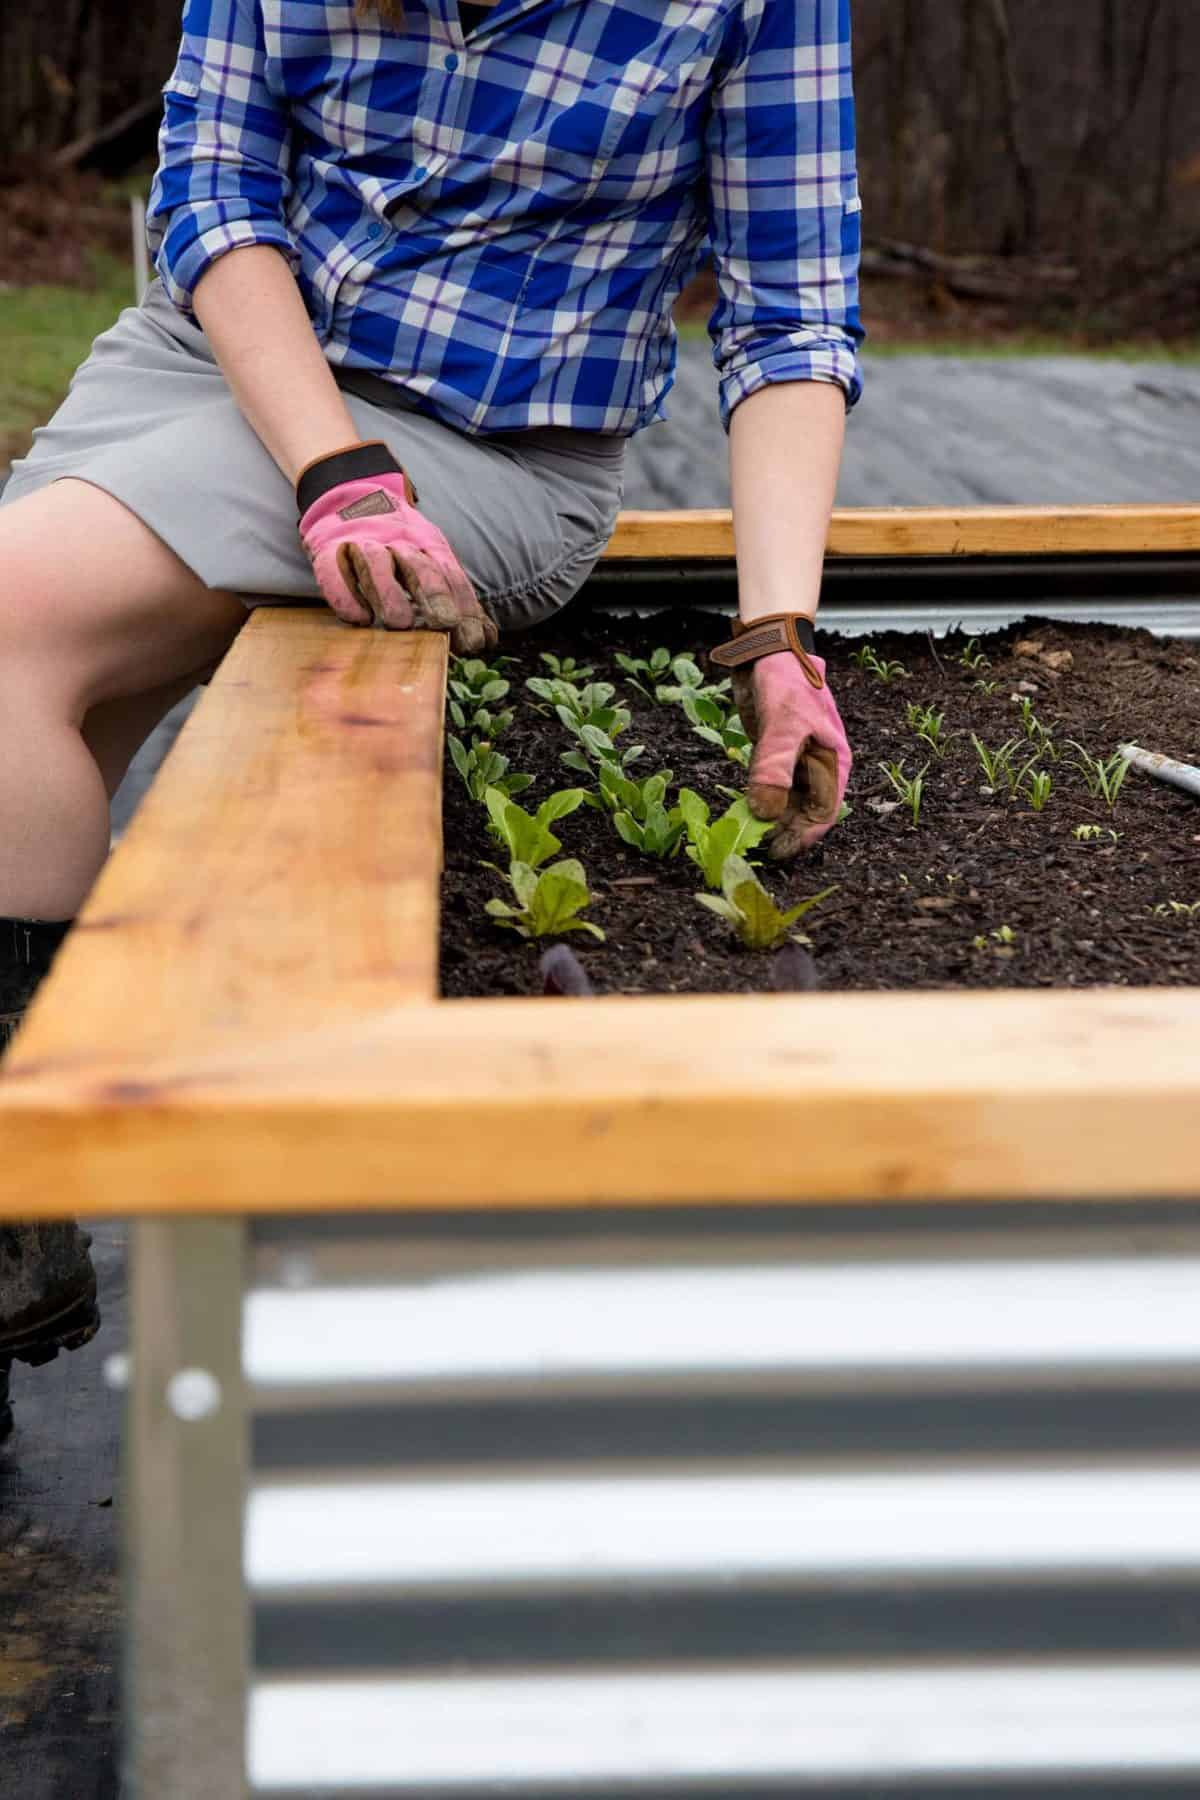 Woman sitting on the side of a raised bed tending to lettuce plants